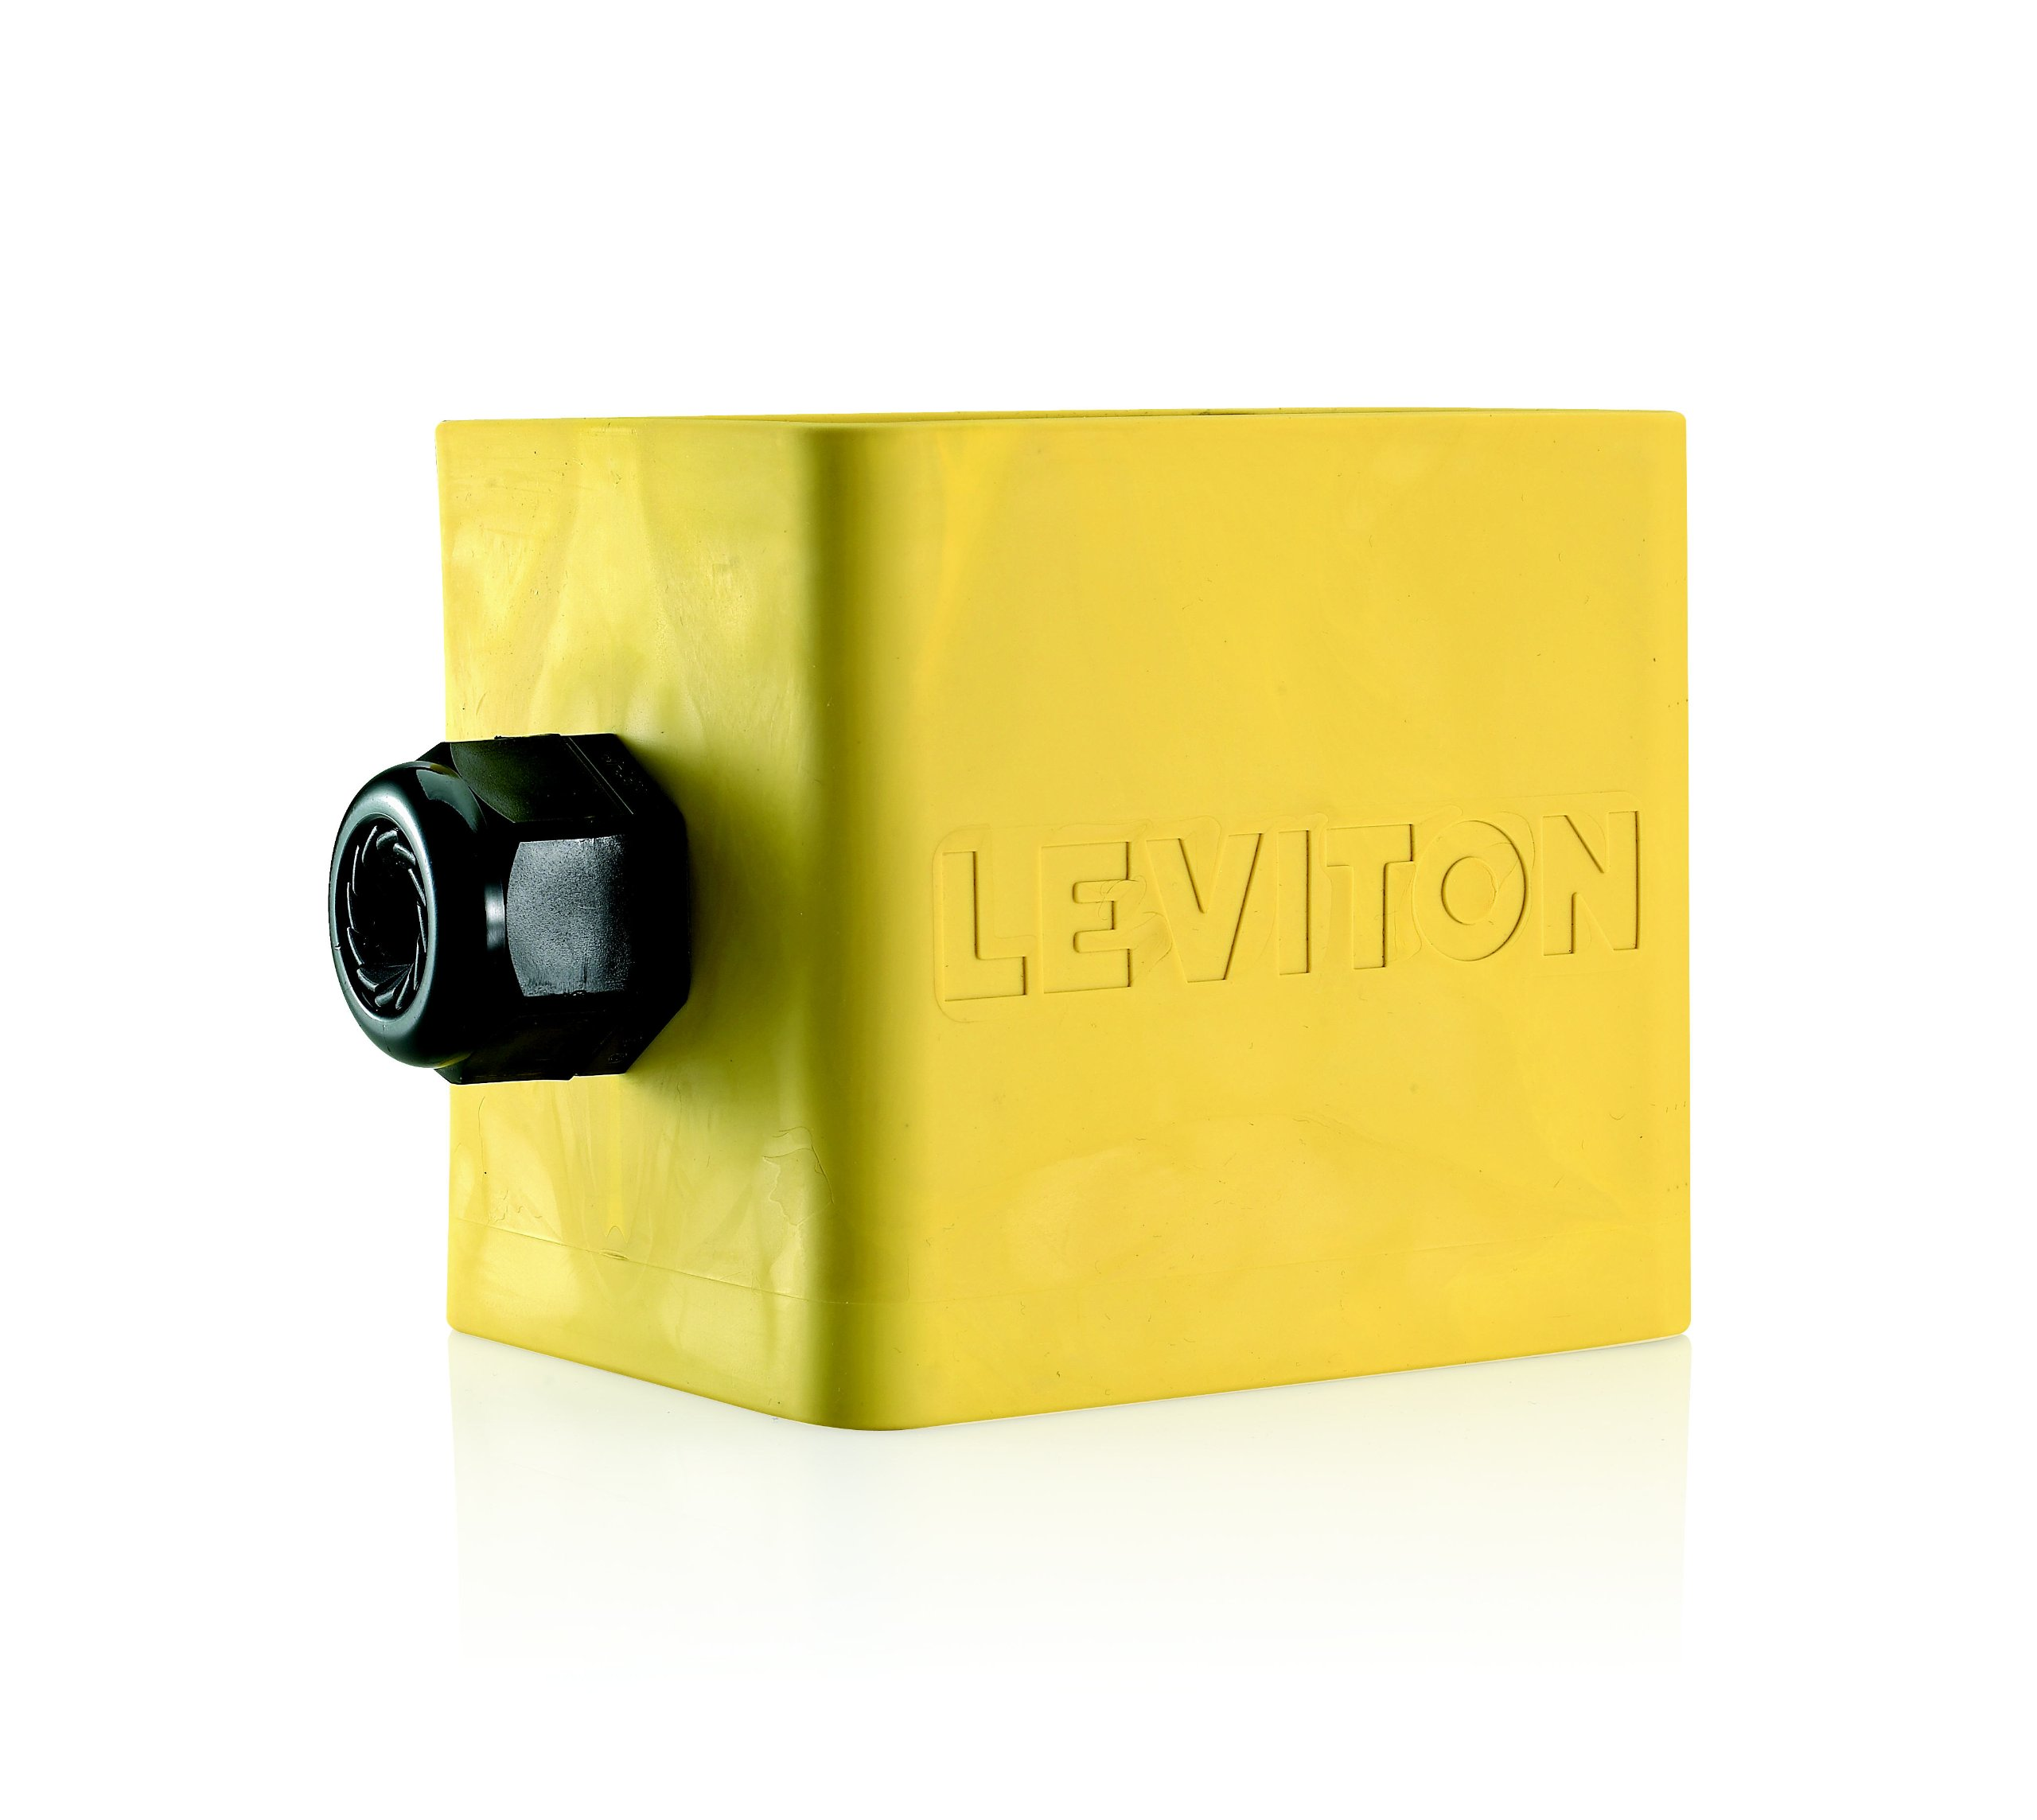 Leviton 3200-2Y Portable Outlet Box, Two-Gang, Standard Depth, Pendant Style, Cable Diameter 0.590-Inch, 1.000-Inch, Yellow by Leviton